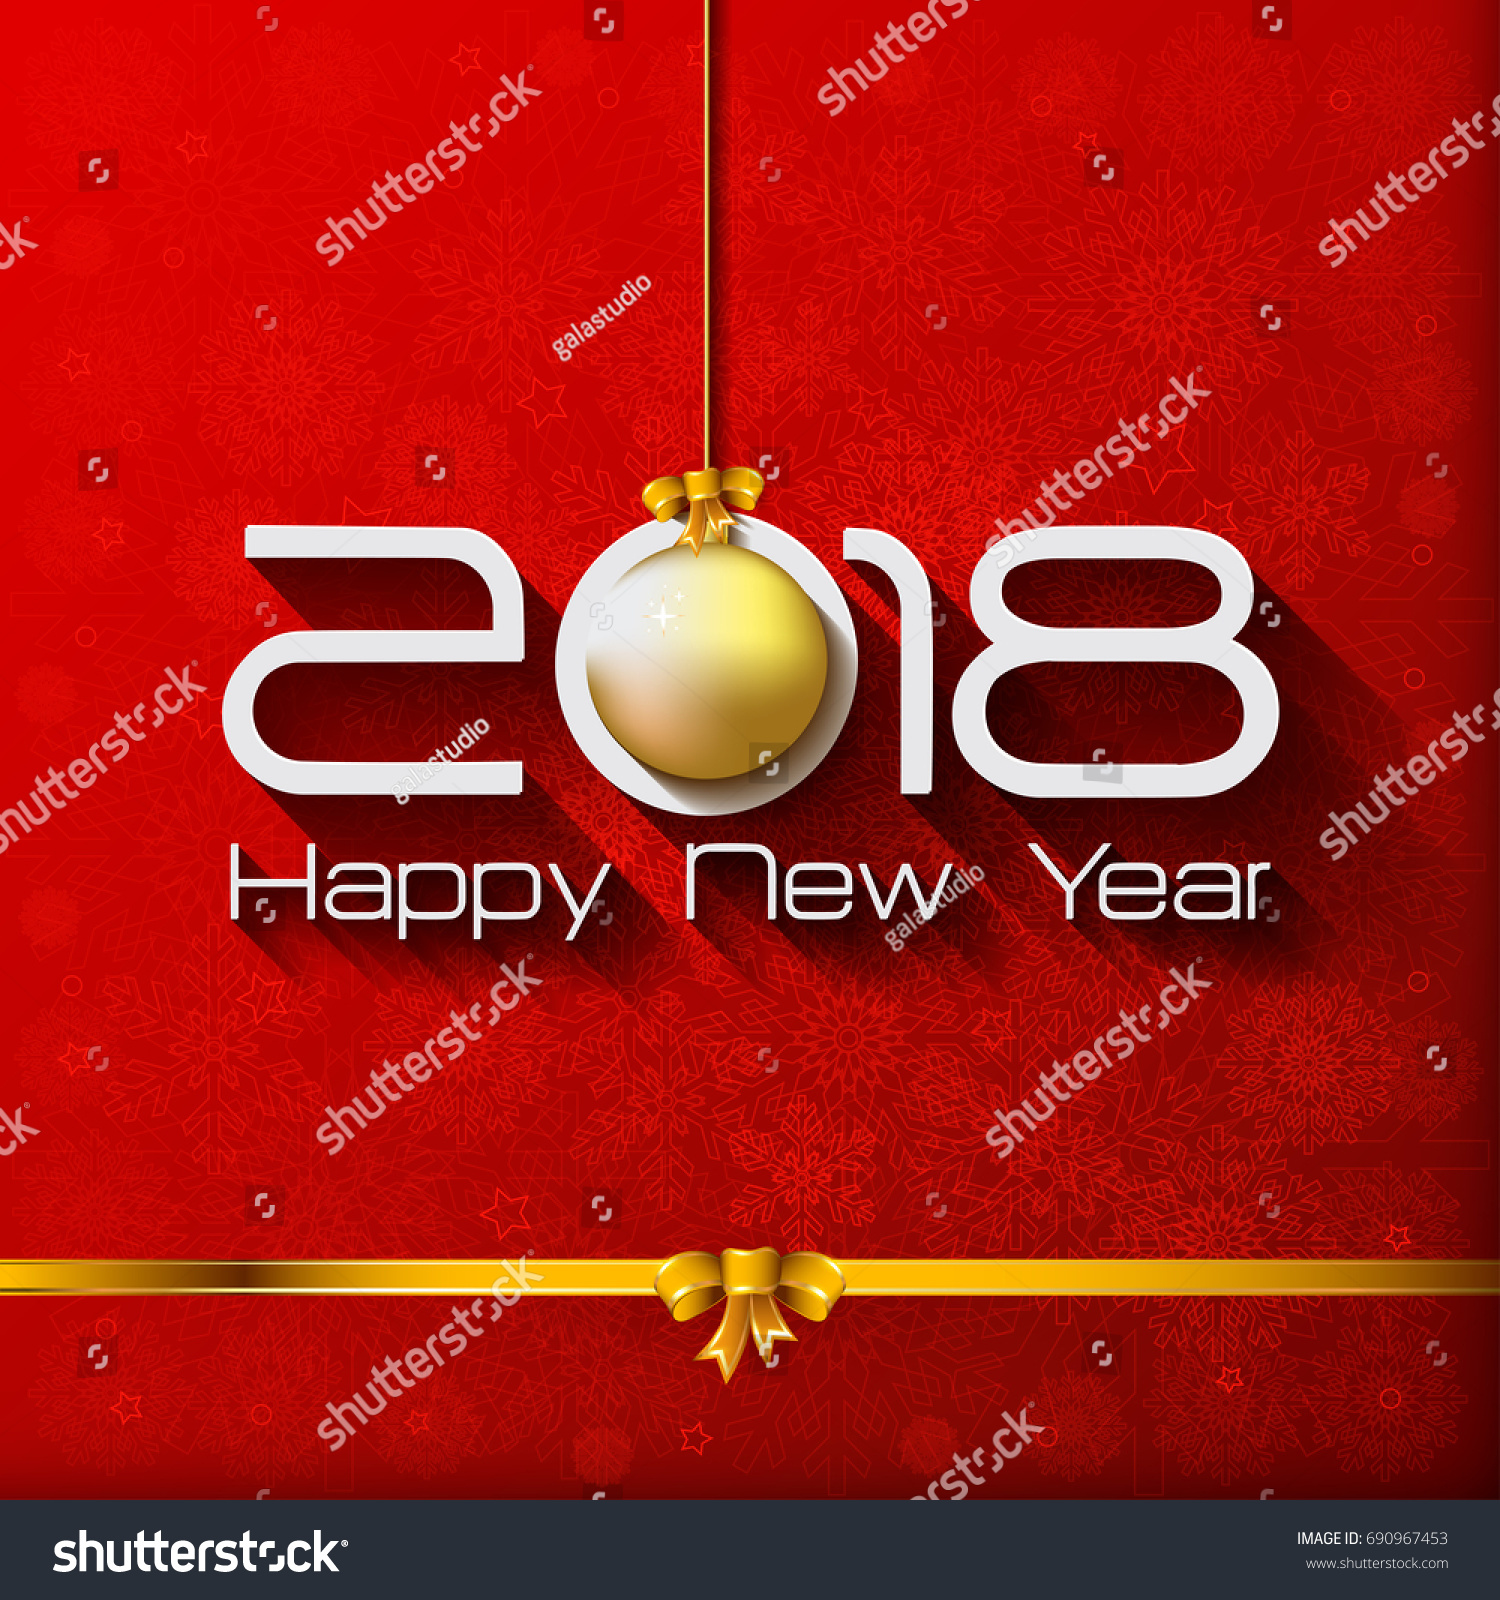 2018 happy new year gift greeting card with gold christmas ball vector illustration